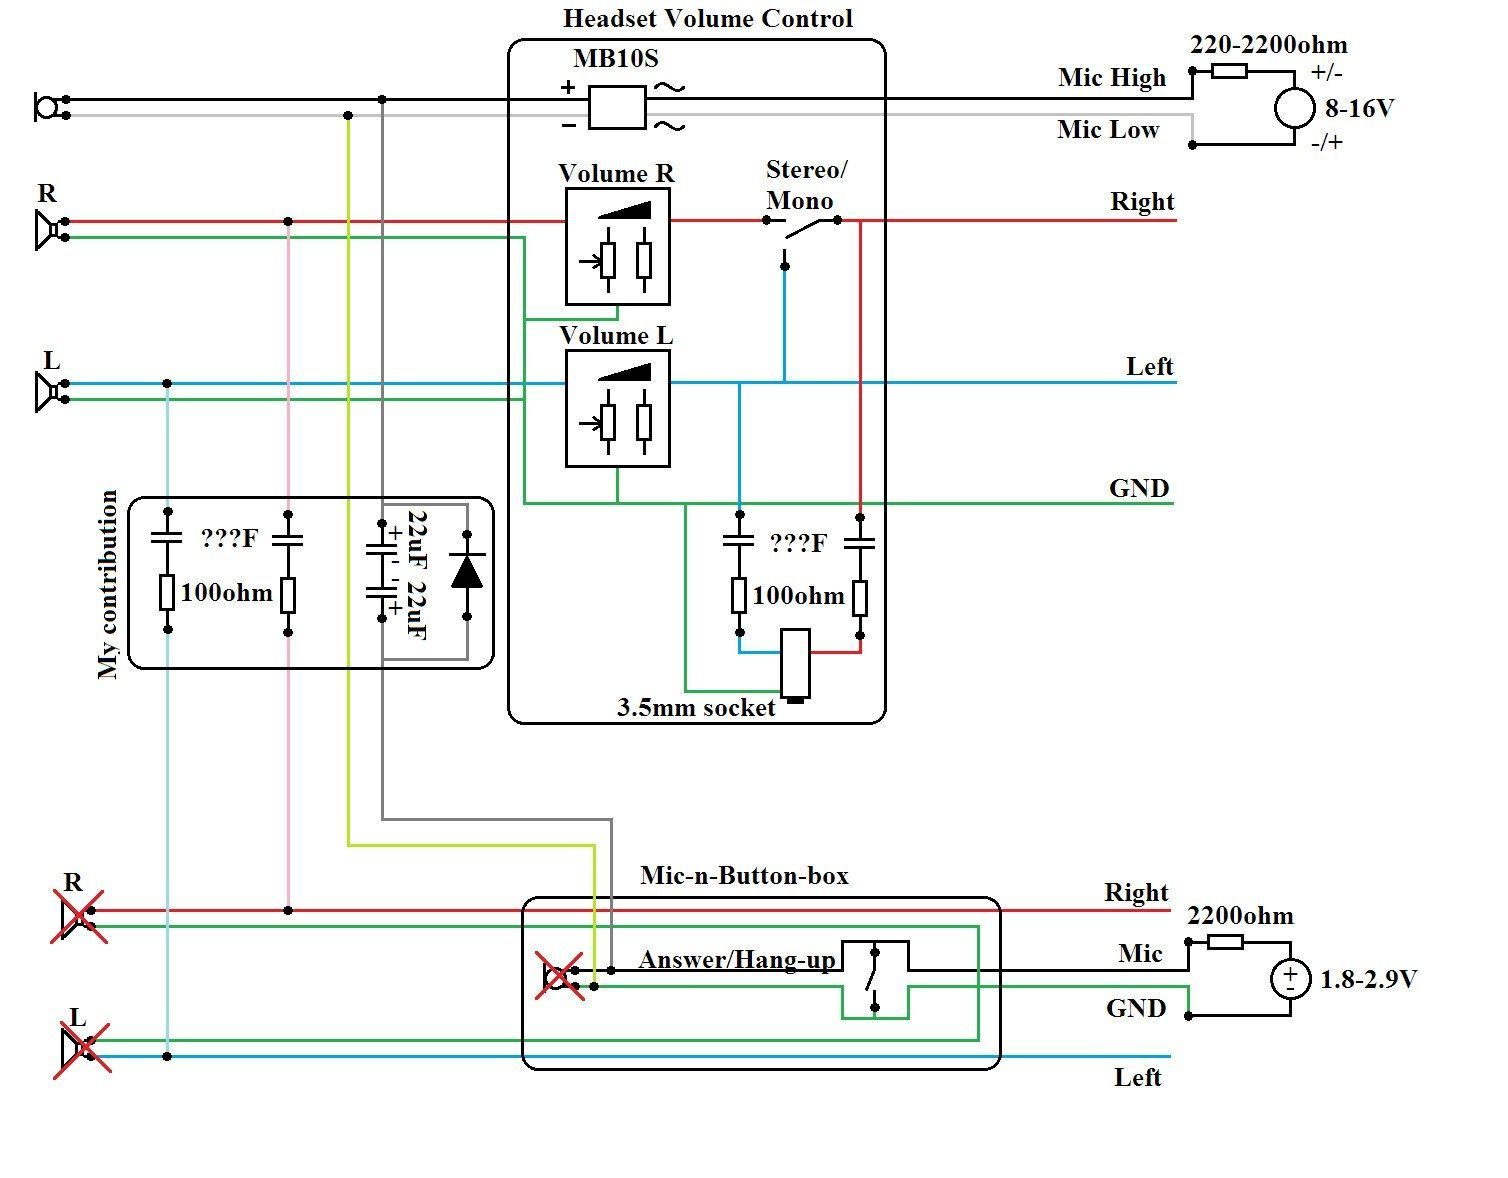 Diagram Ground Support Headset Wiring Diagrams Full Version Hd Quality Wiring Diagrams Activediagram Gardacoupon It